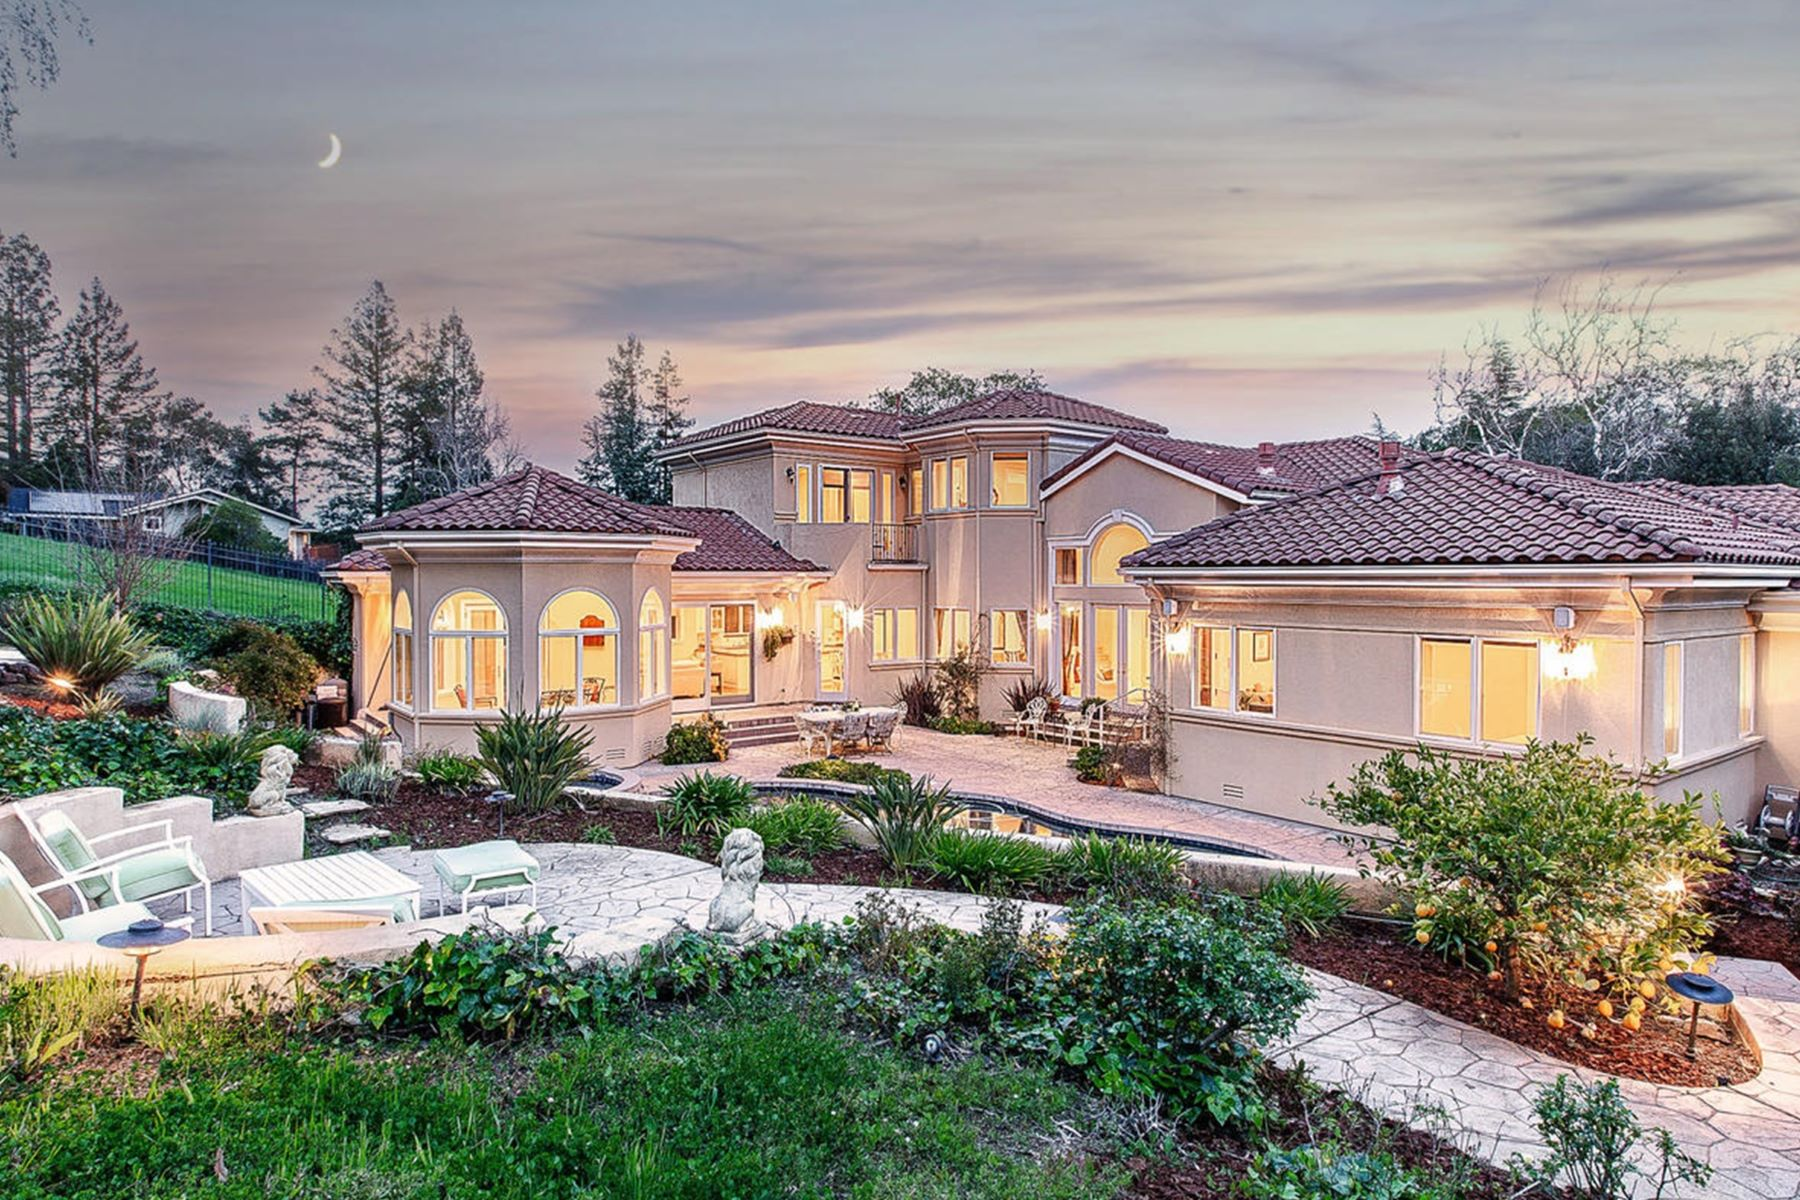 Single Family Homes for Sale at Prestigious Almaden Country Club 7121 Echo Loop San Jose, California 95120 United States